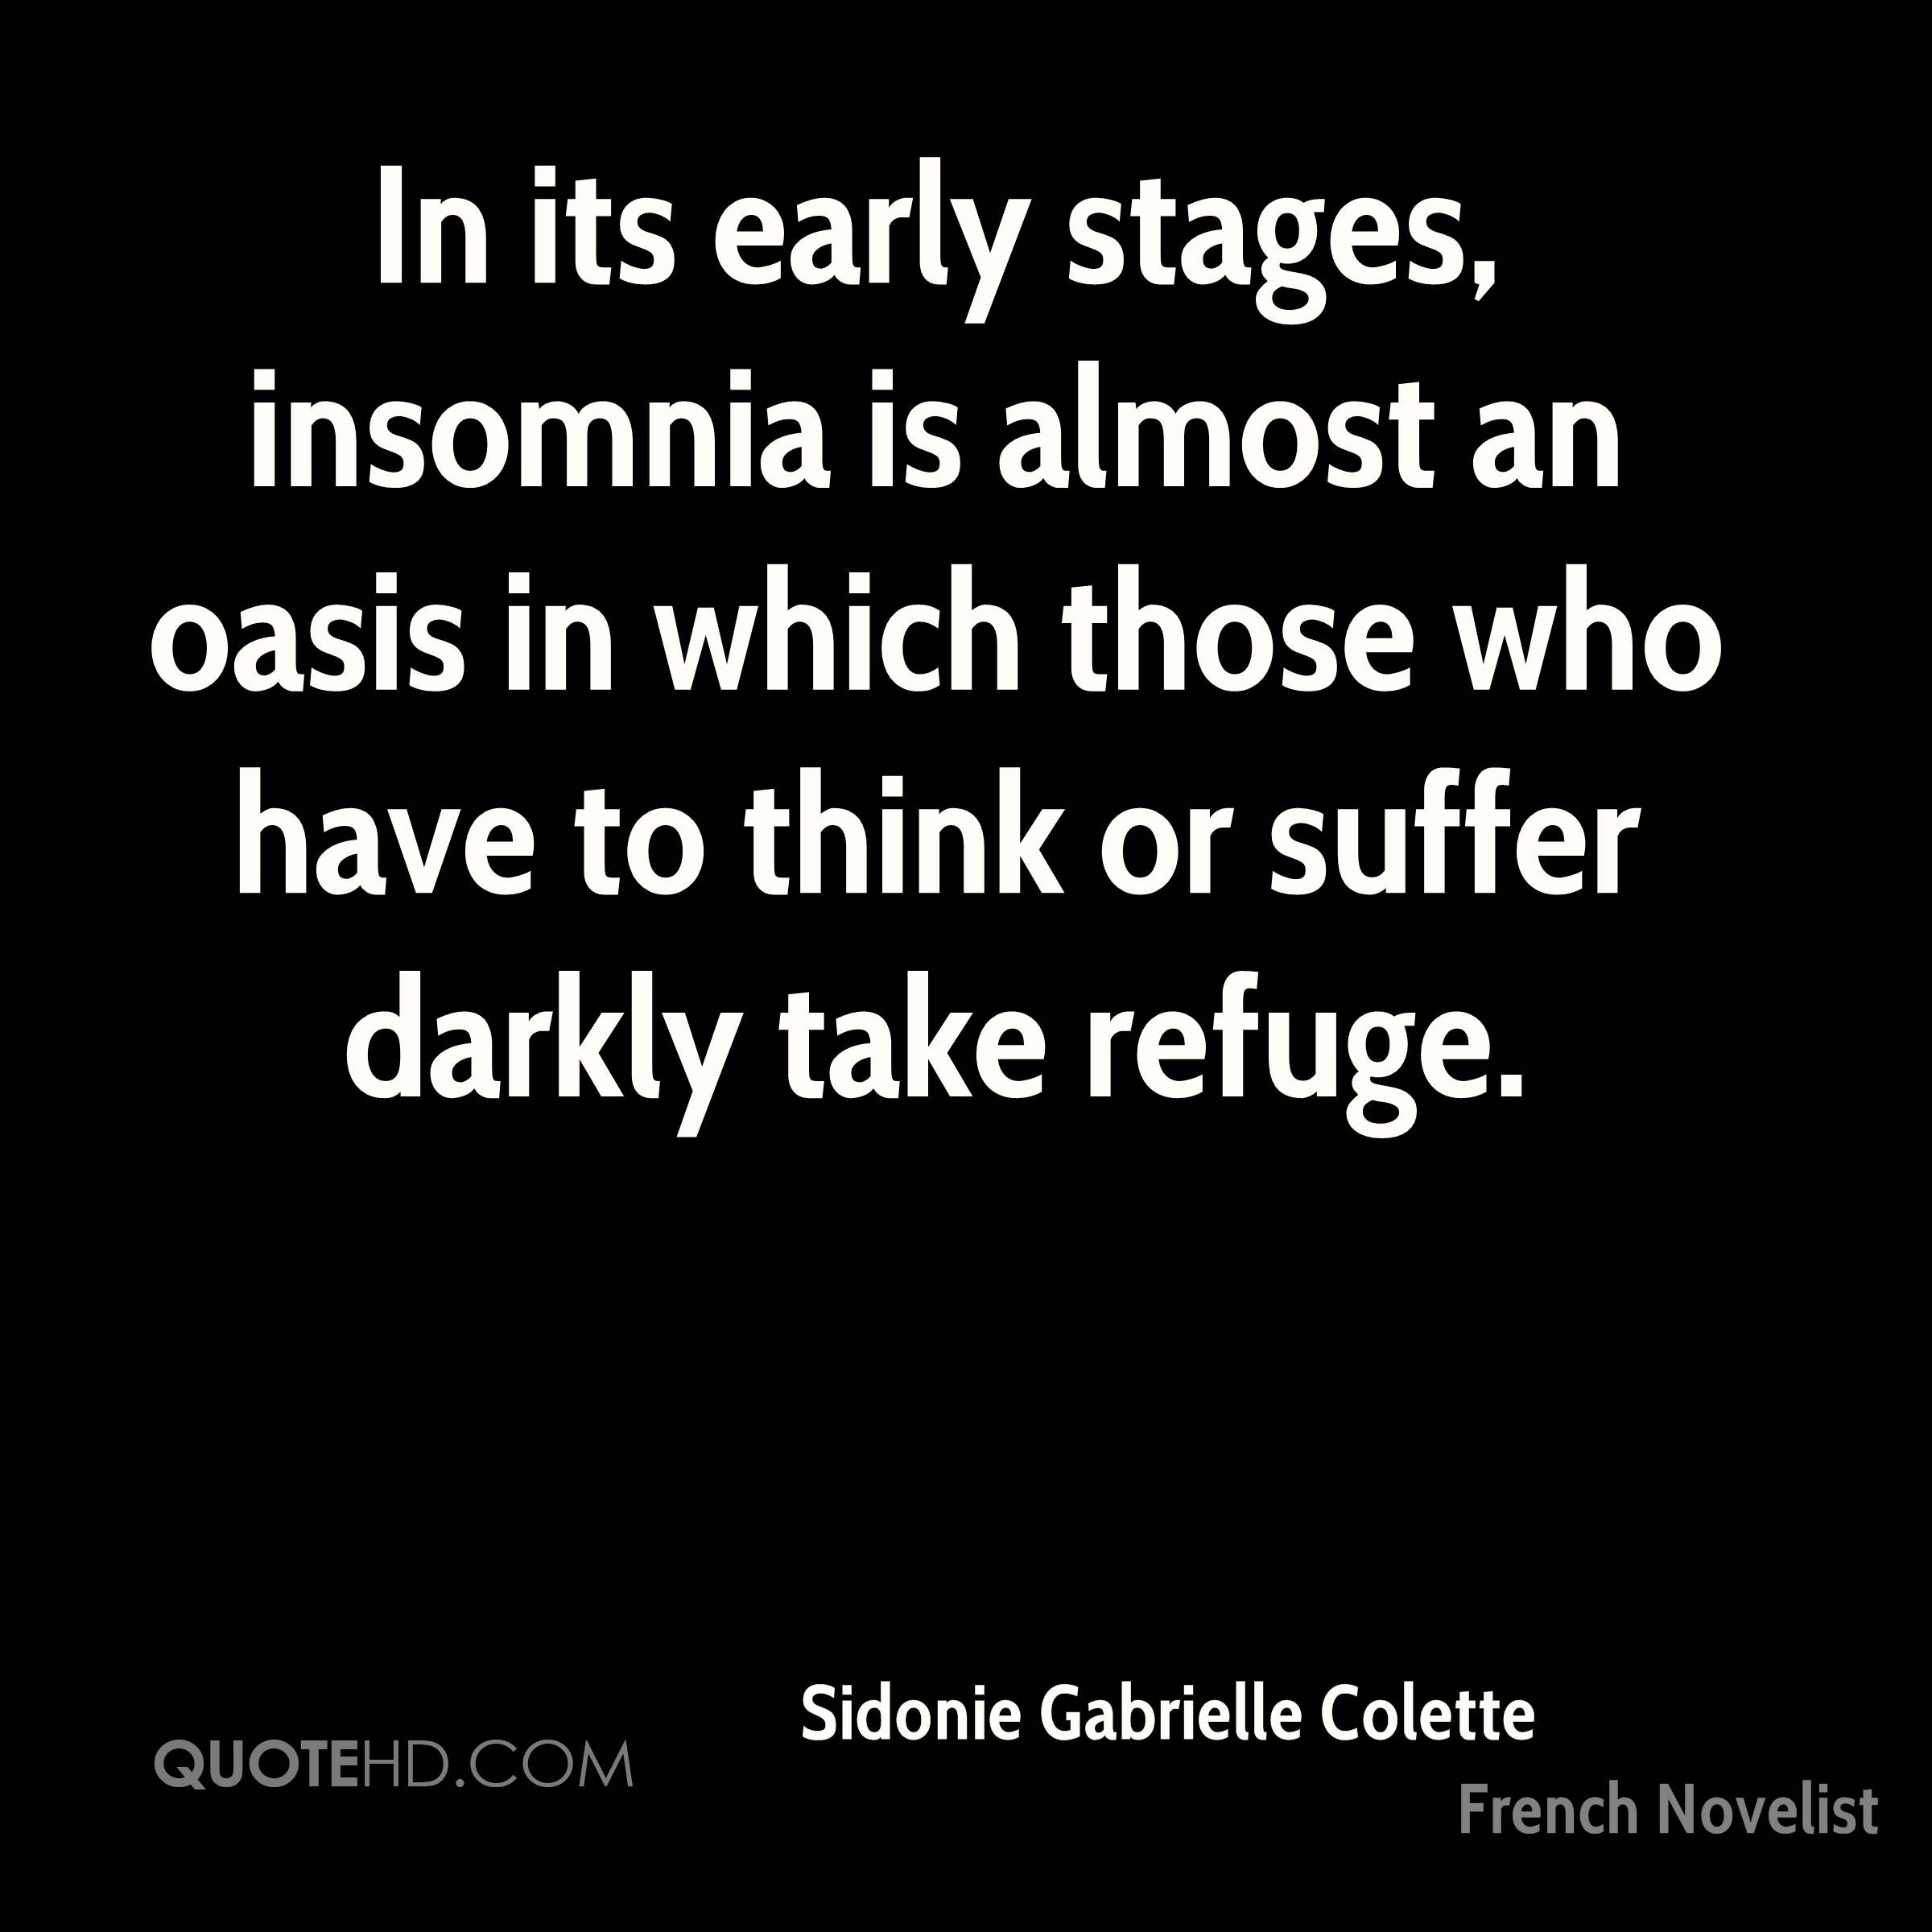 Quotes About Insomnia Sidonie Gabrielle Colette Quotes  Quotehd